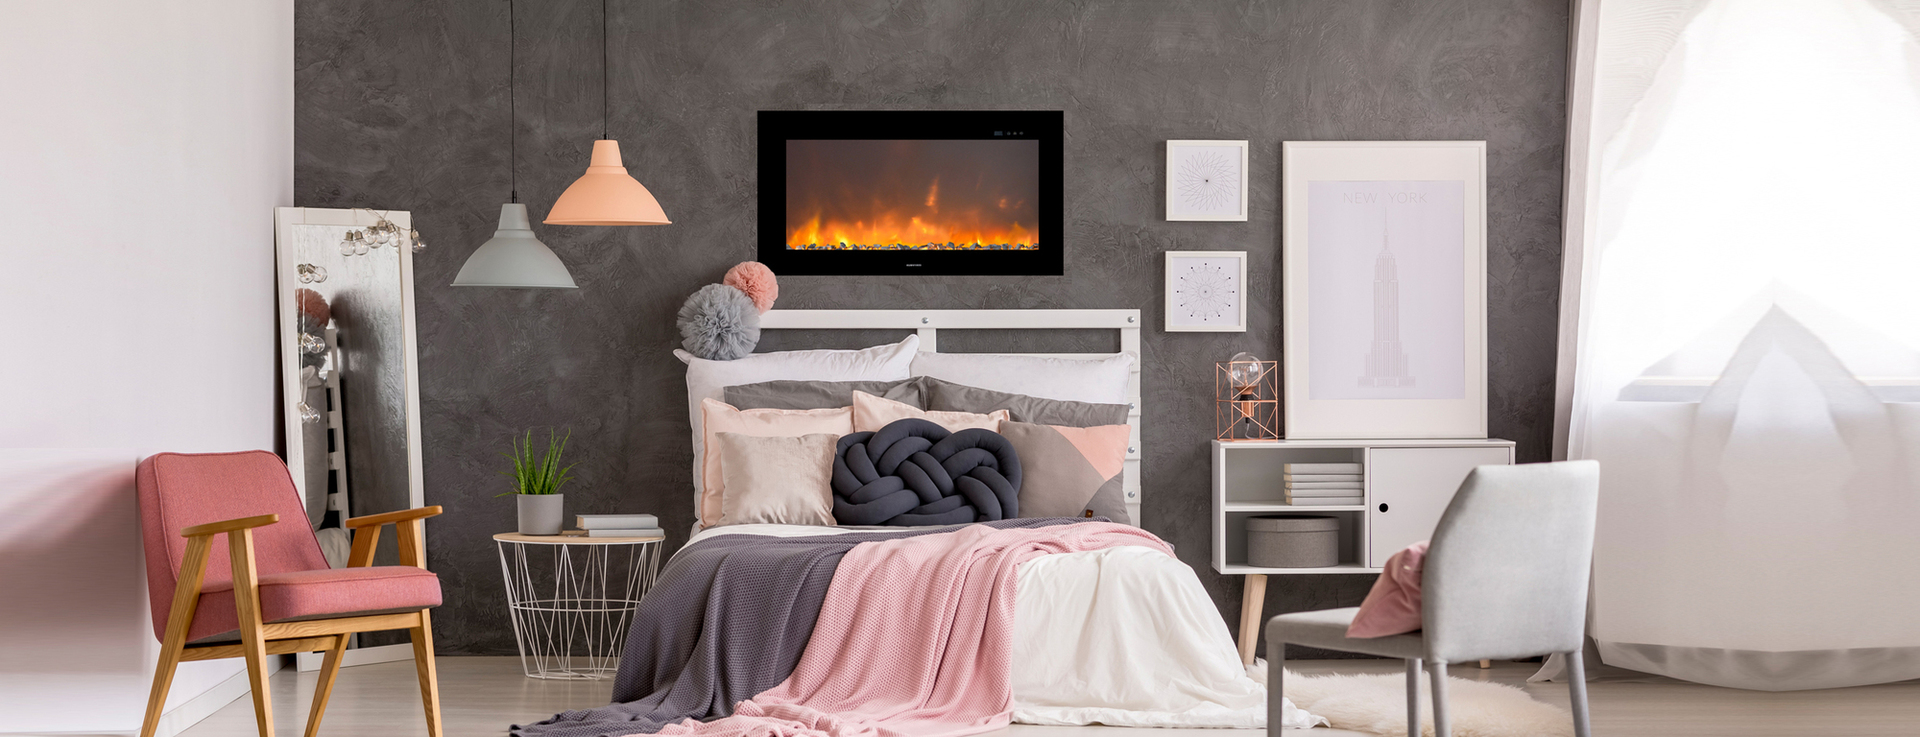 Electric Fireplaces And Decorative Fireplaces Xaralyn